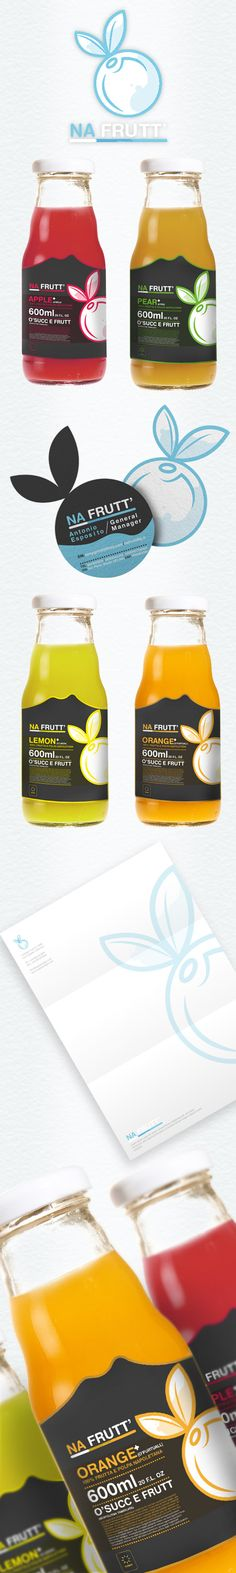 NA FRUTT juice #packaging and stationery design. Love how the business cards are diecut with the logo.